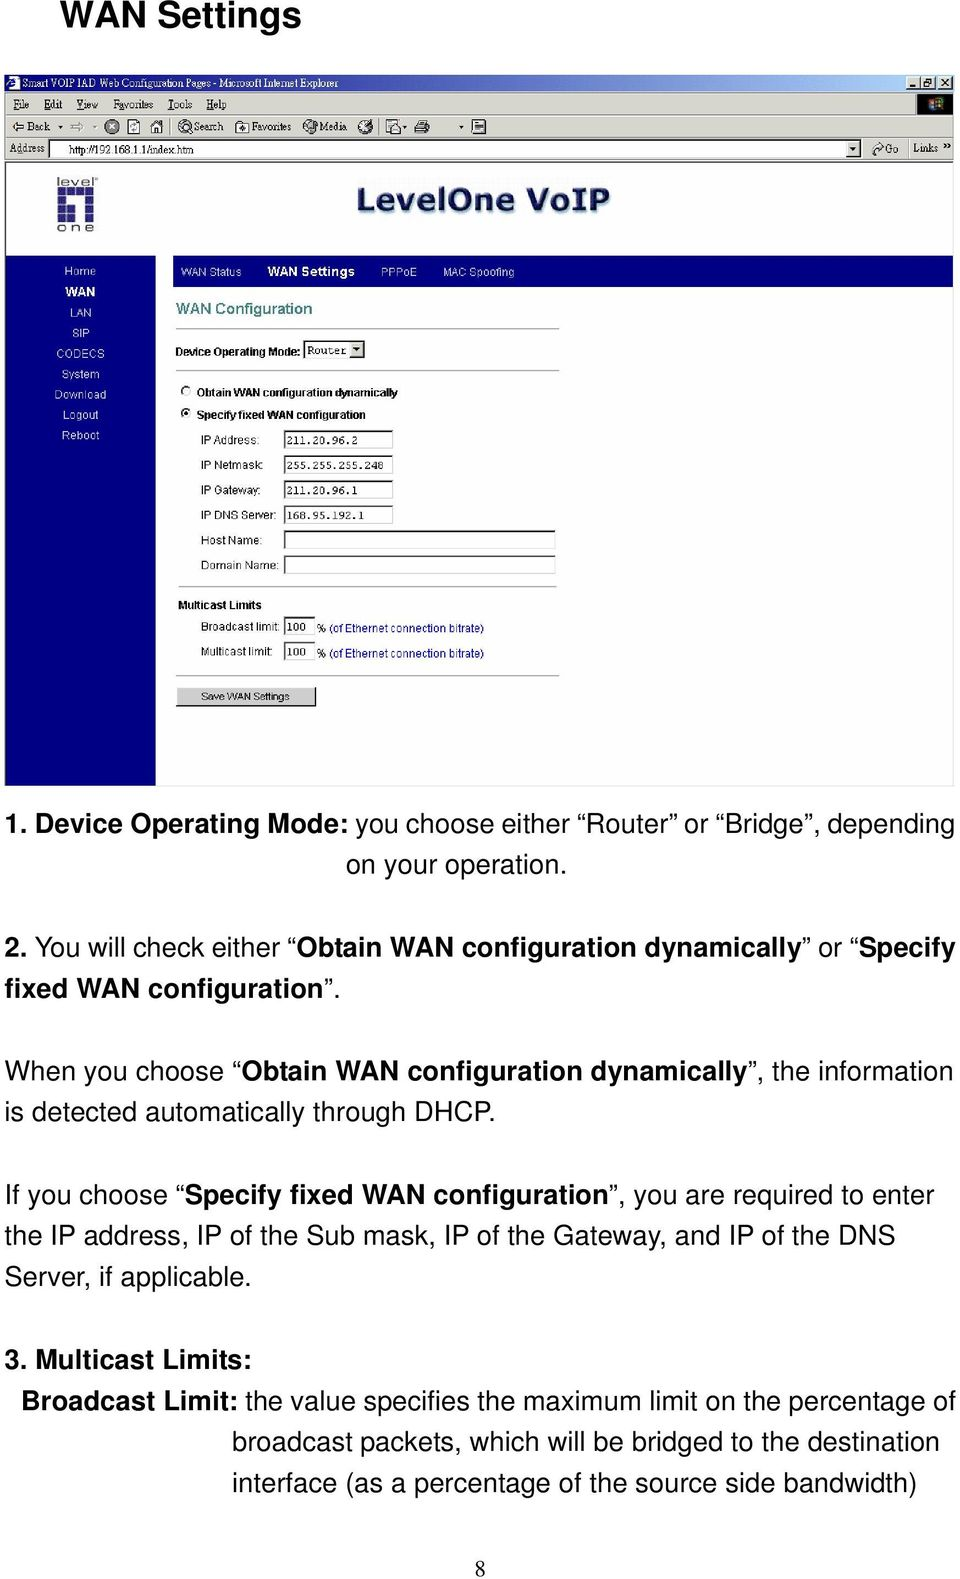 When you choose Obtain WAN configuration dynamically, the information is detected automatically through DHCP.